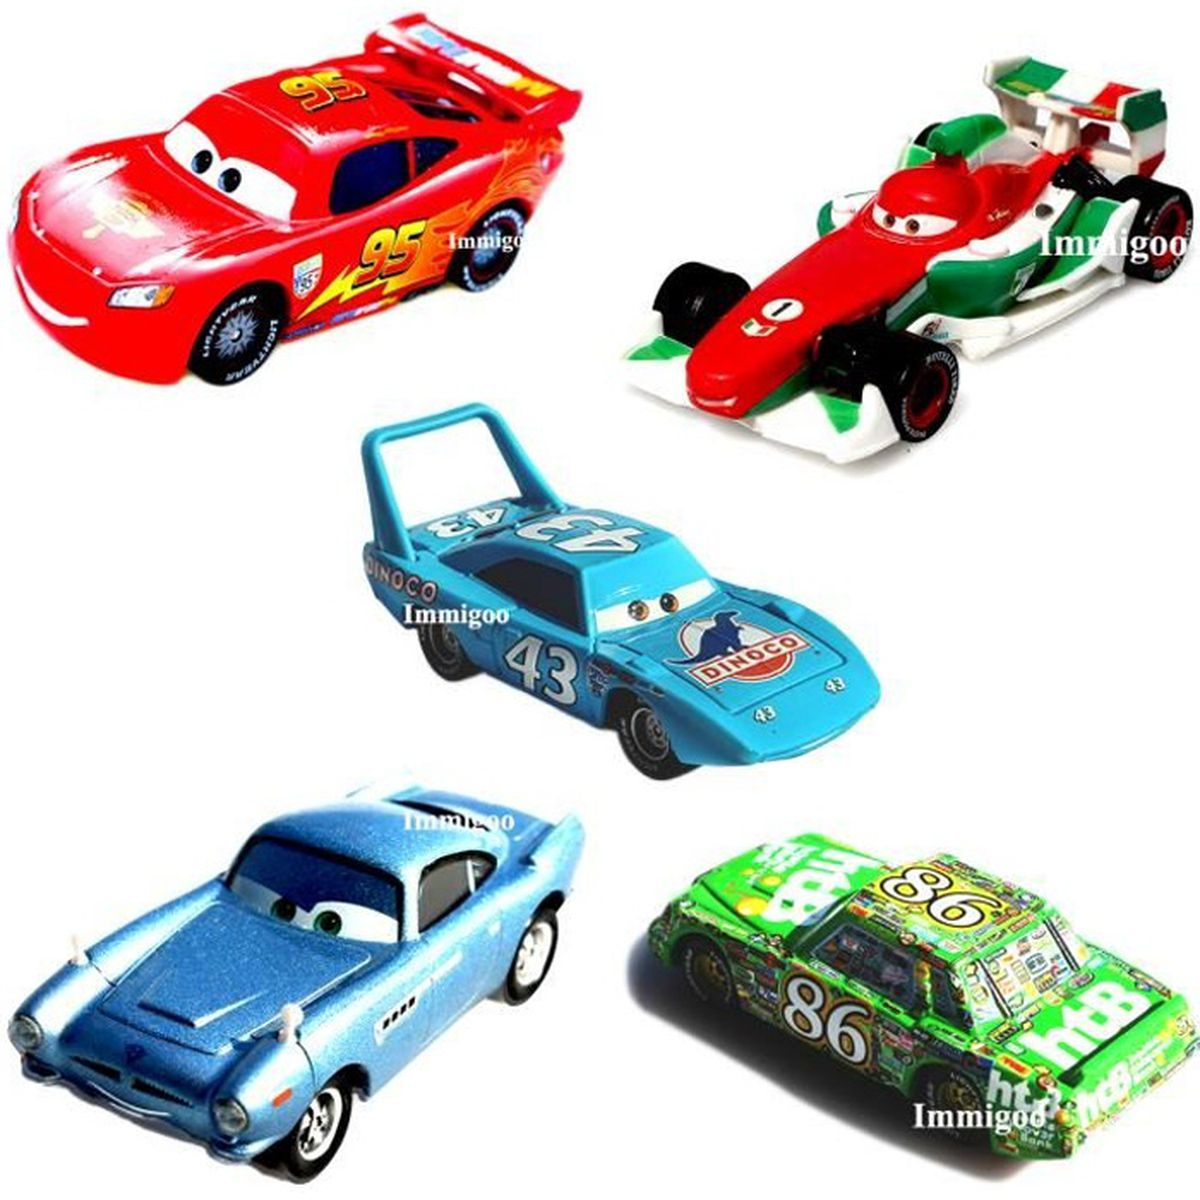 immigoo cars 5 pieces flash lightning mcqueen c 01 francesco bernoulli c 17 finn mcmissile c 16. Black Bedroom Furniture Sets. Home Design Ideas